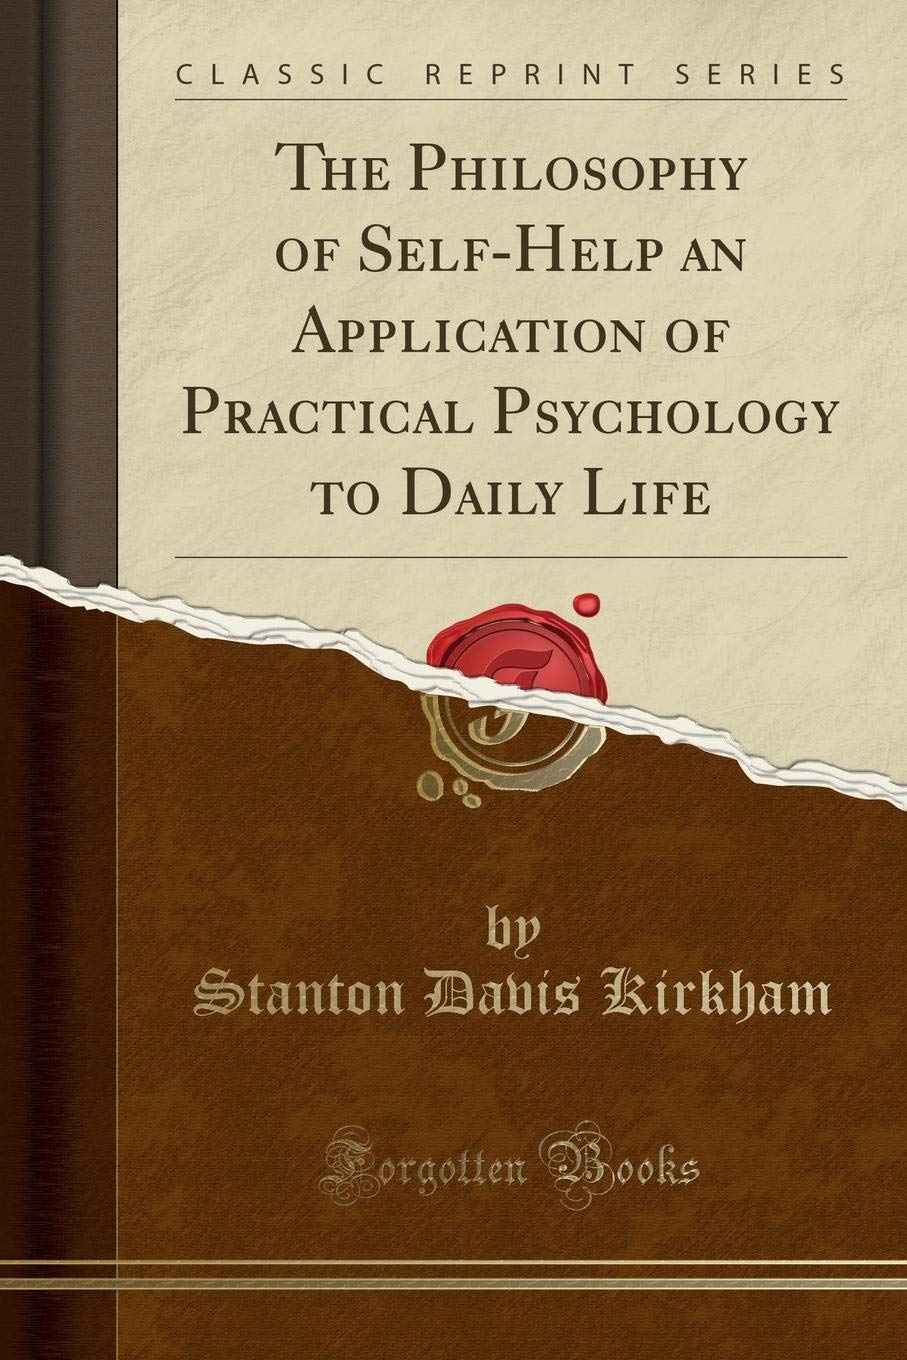 Amazon Com Applicationhelp >> The Philosophy Of Self Help An Application Of Practical